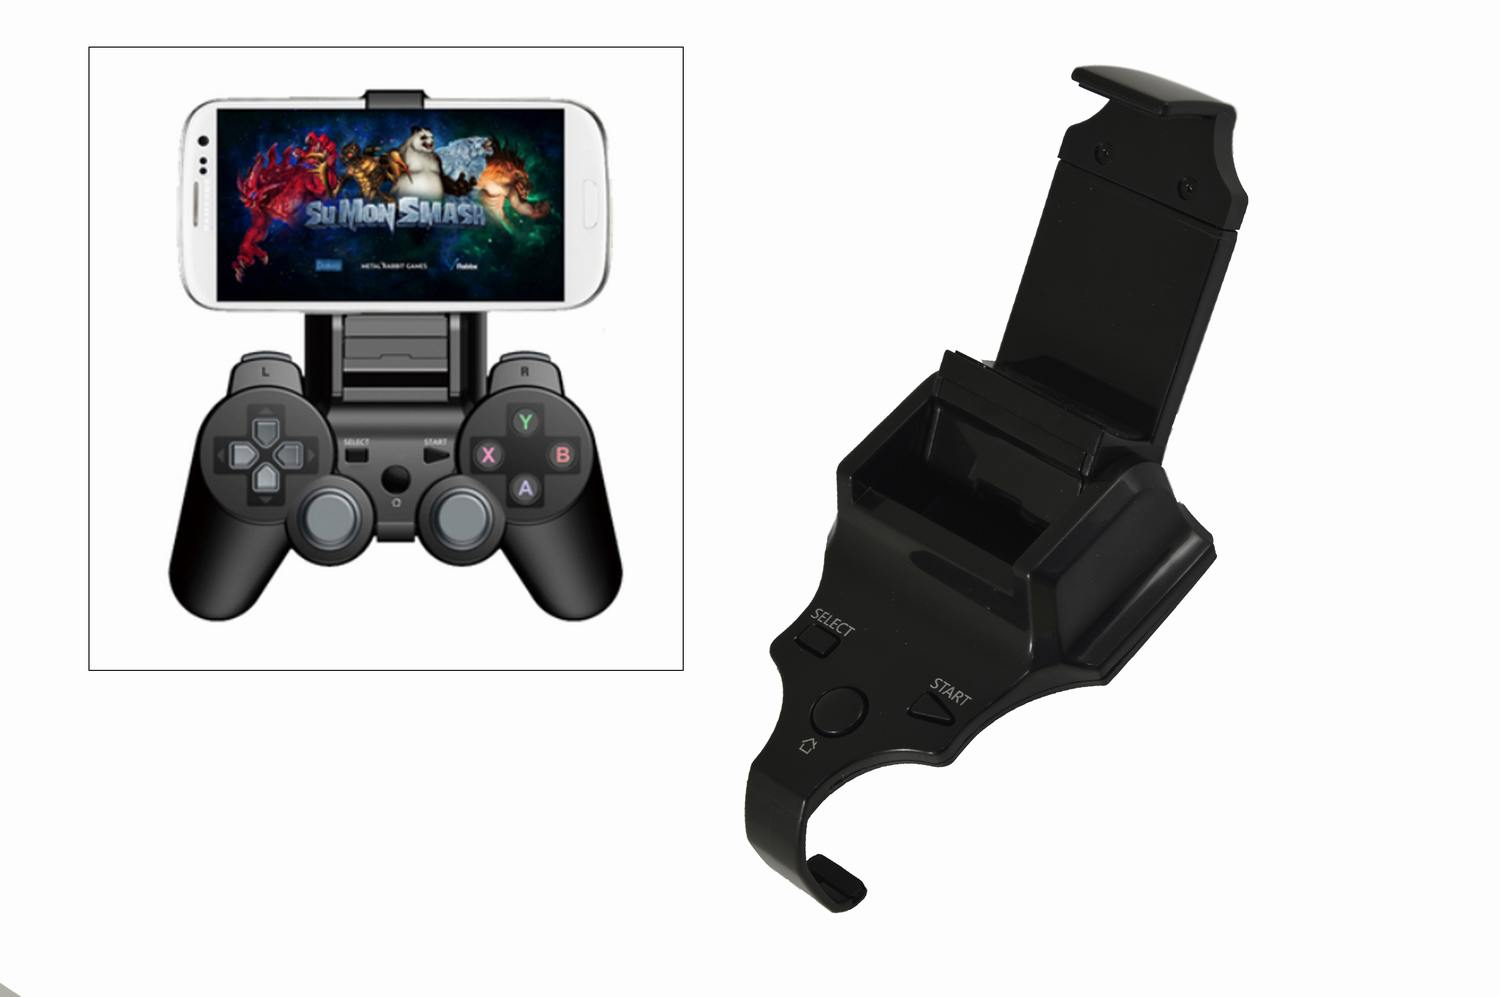 Length Adjustable Smart Clip Game Phone Holder for Sony PS3 Dual Shock 3 Galaxy Series Video Game Player Accessories(China (Mainland))